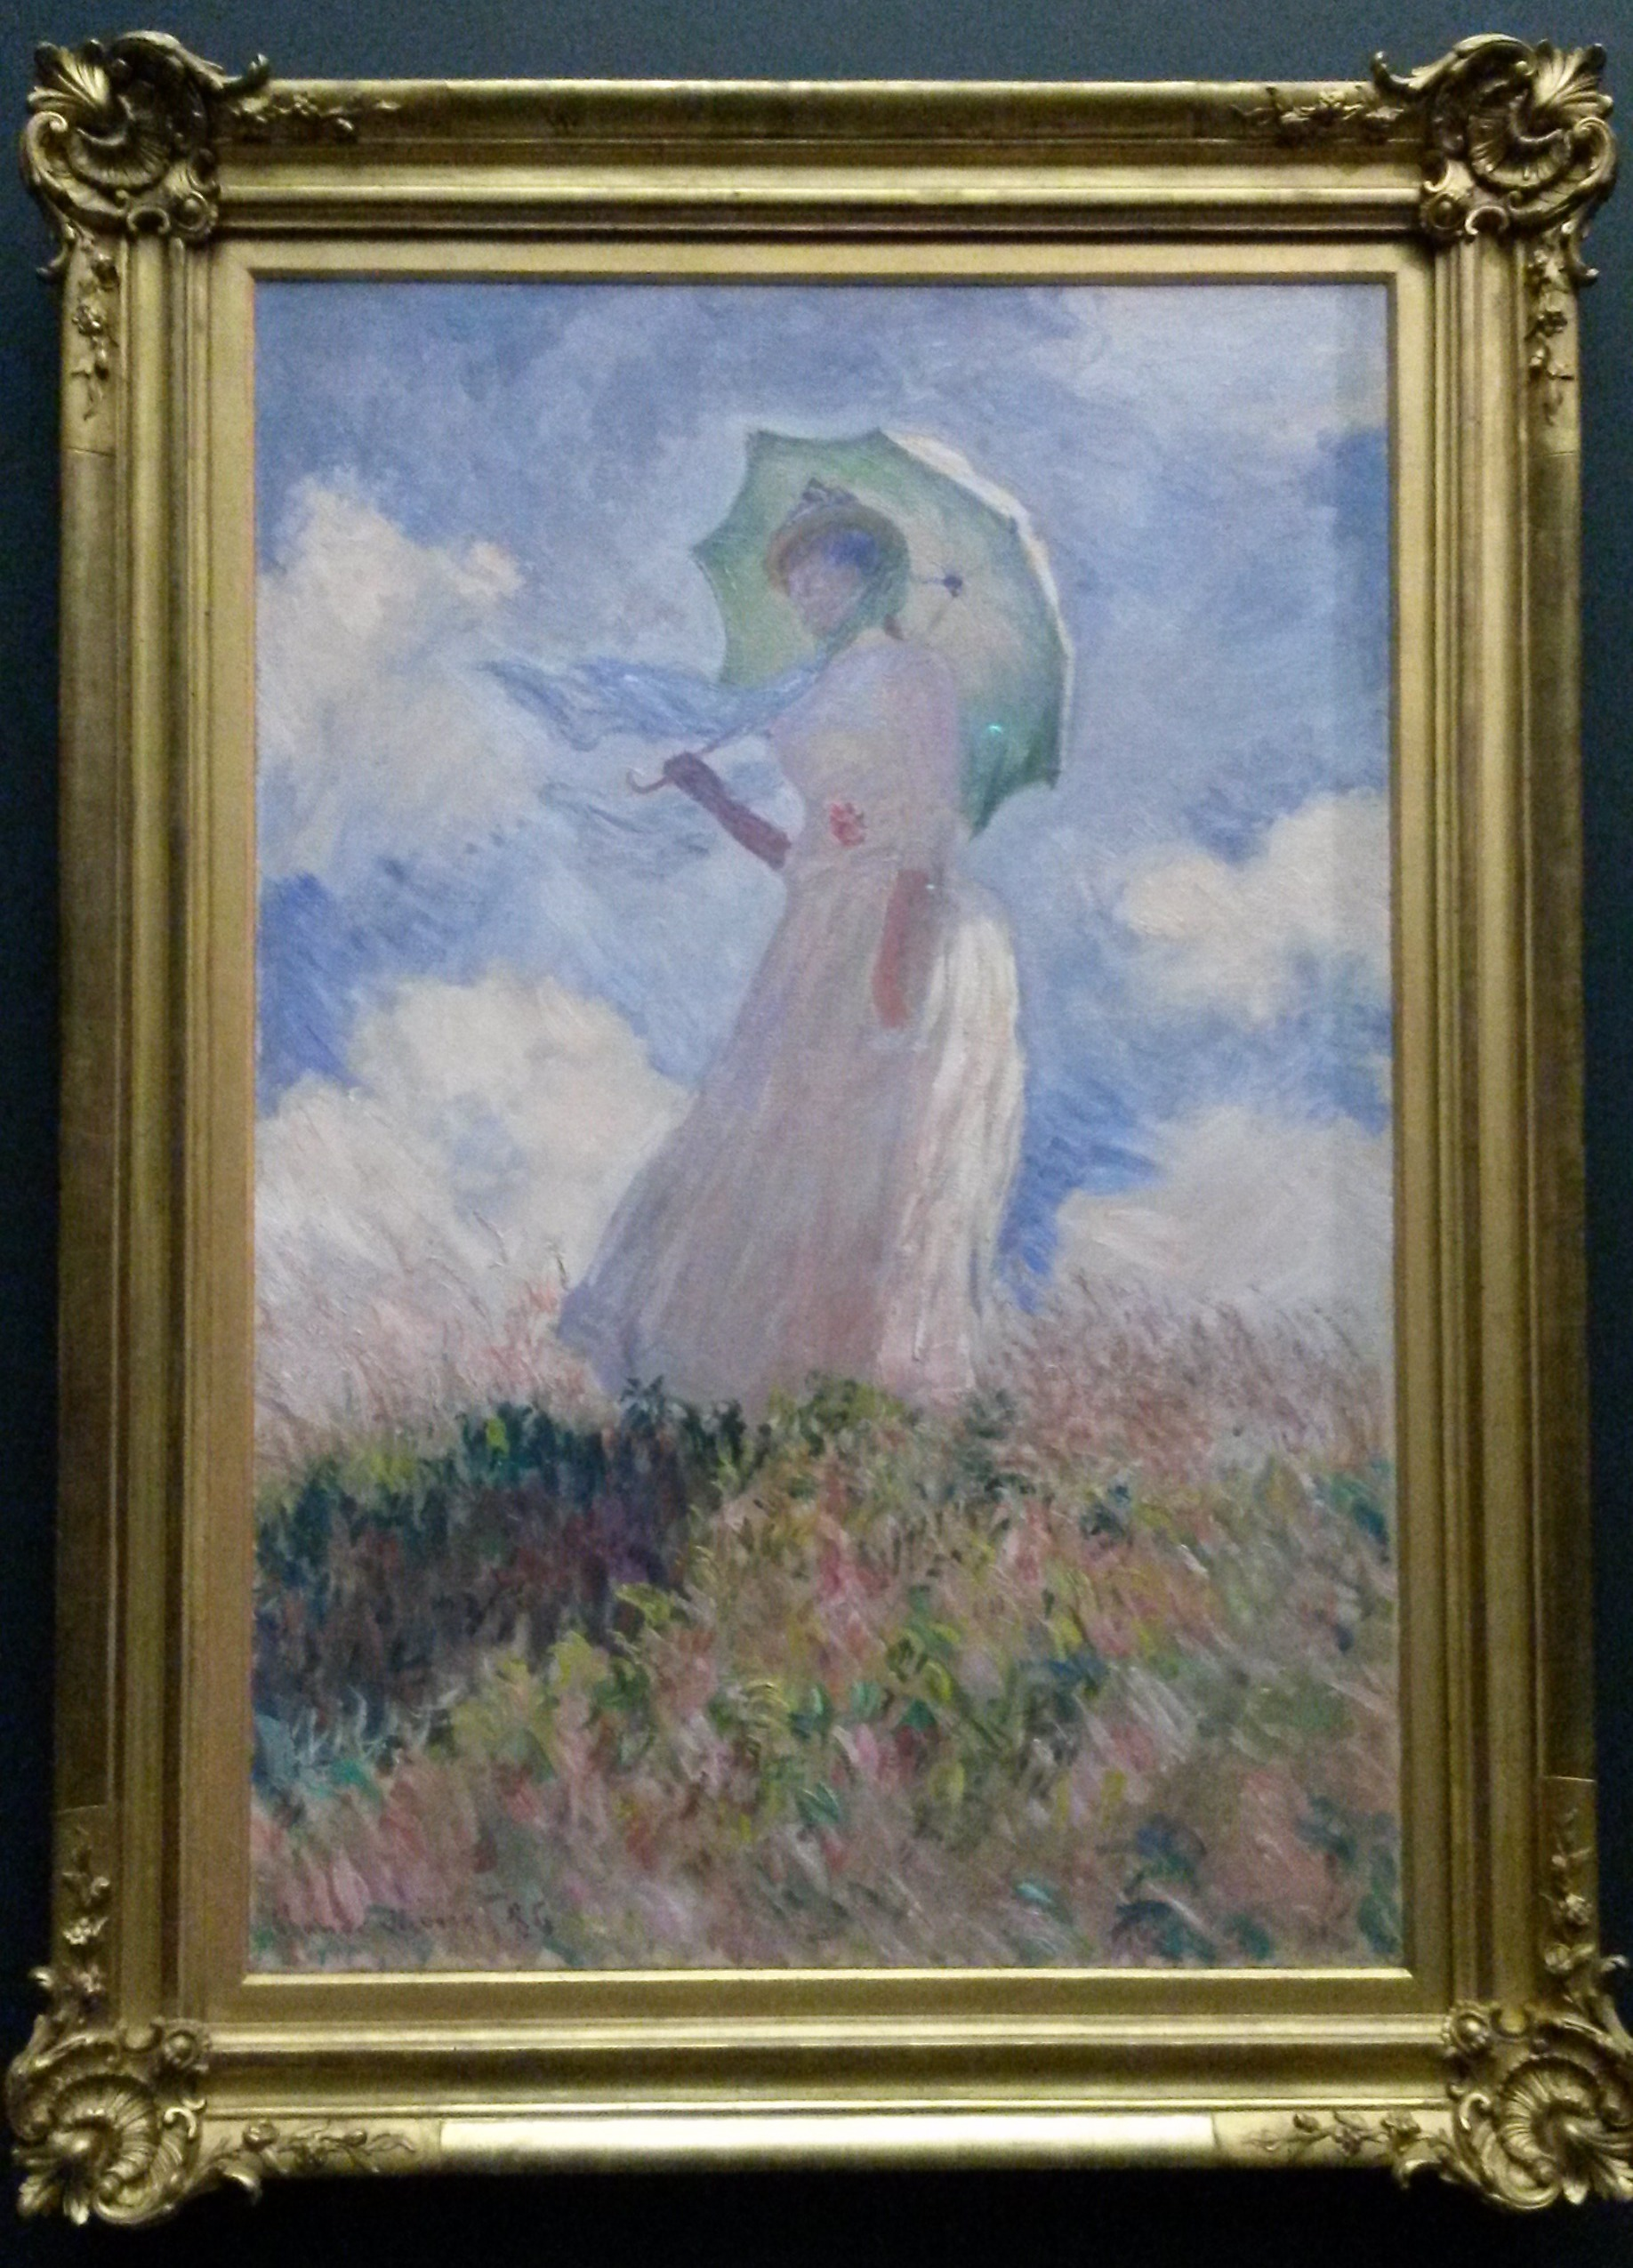 Woman with a Parasol, Turned to the Right